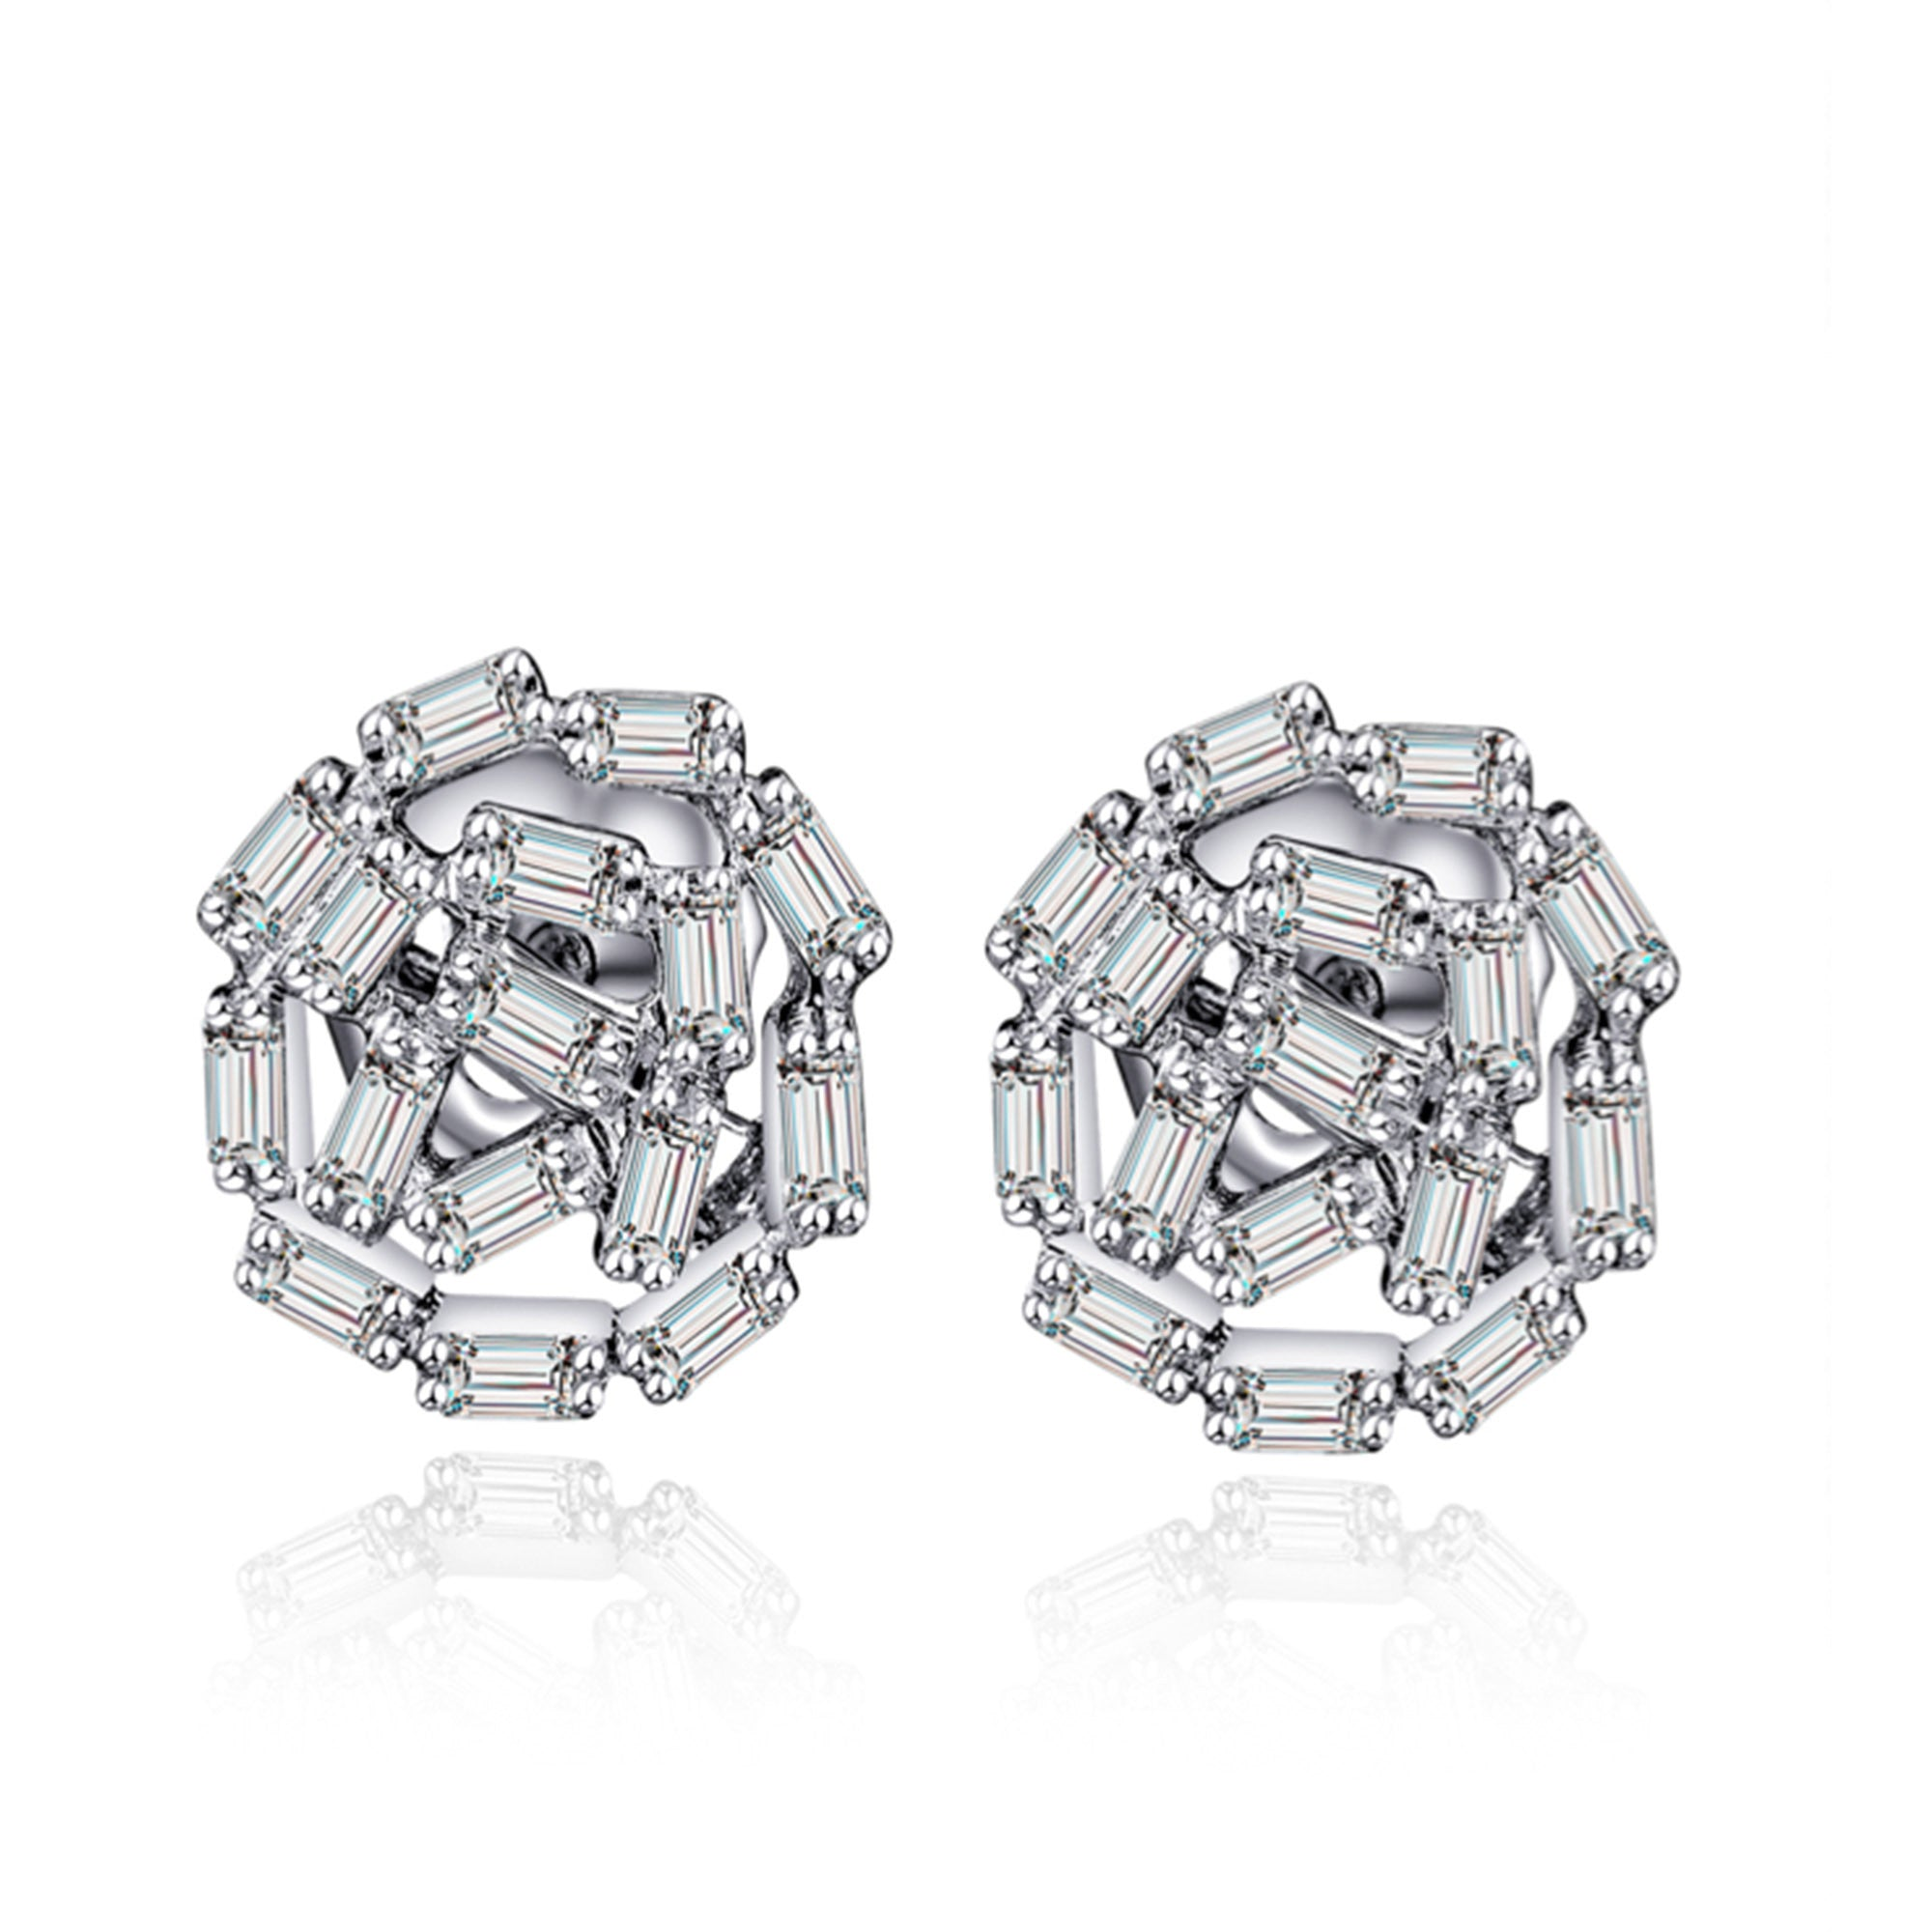 gold pin chalfen white diamond rub set h stud jewellery over earrings bday